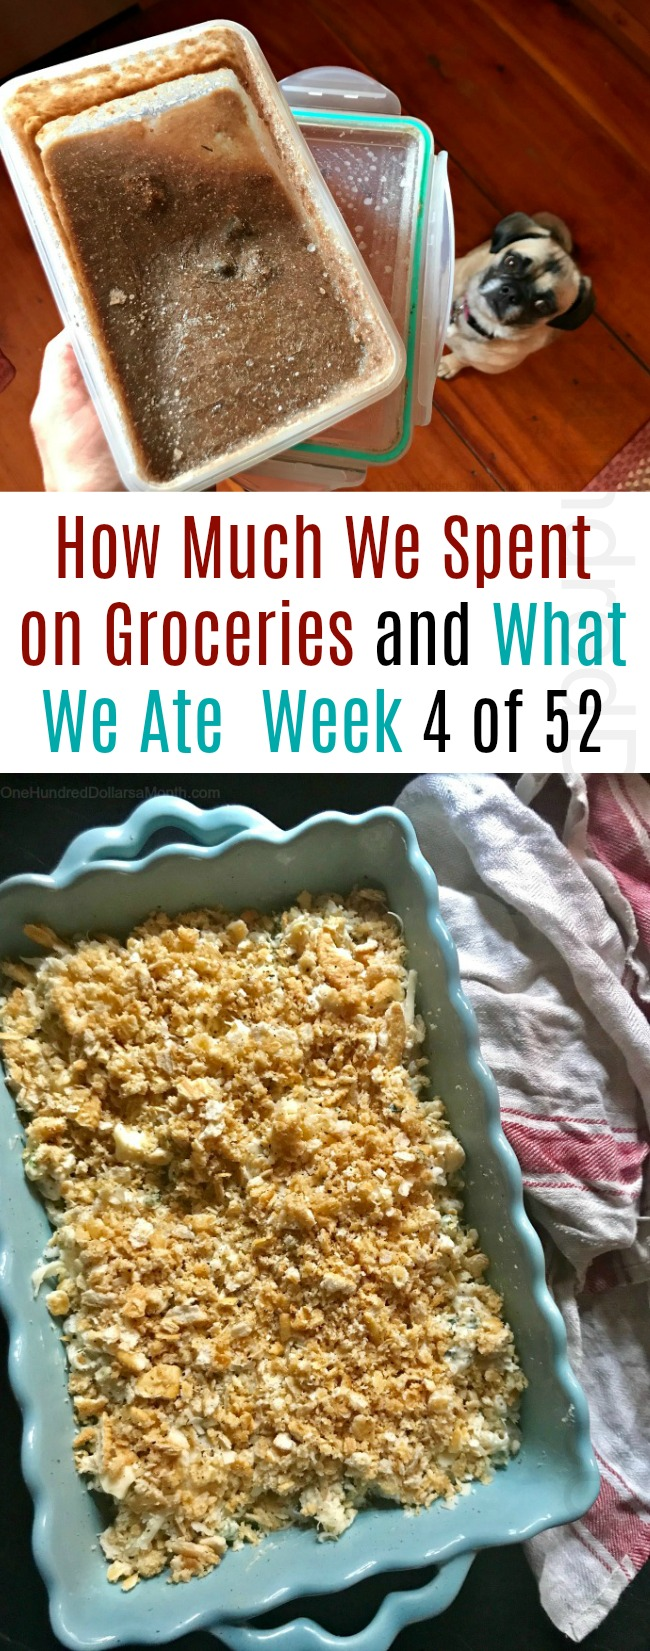 How Much We Spent on Groceries and What We Ate – Week 4 of 52